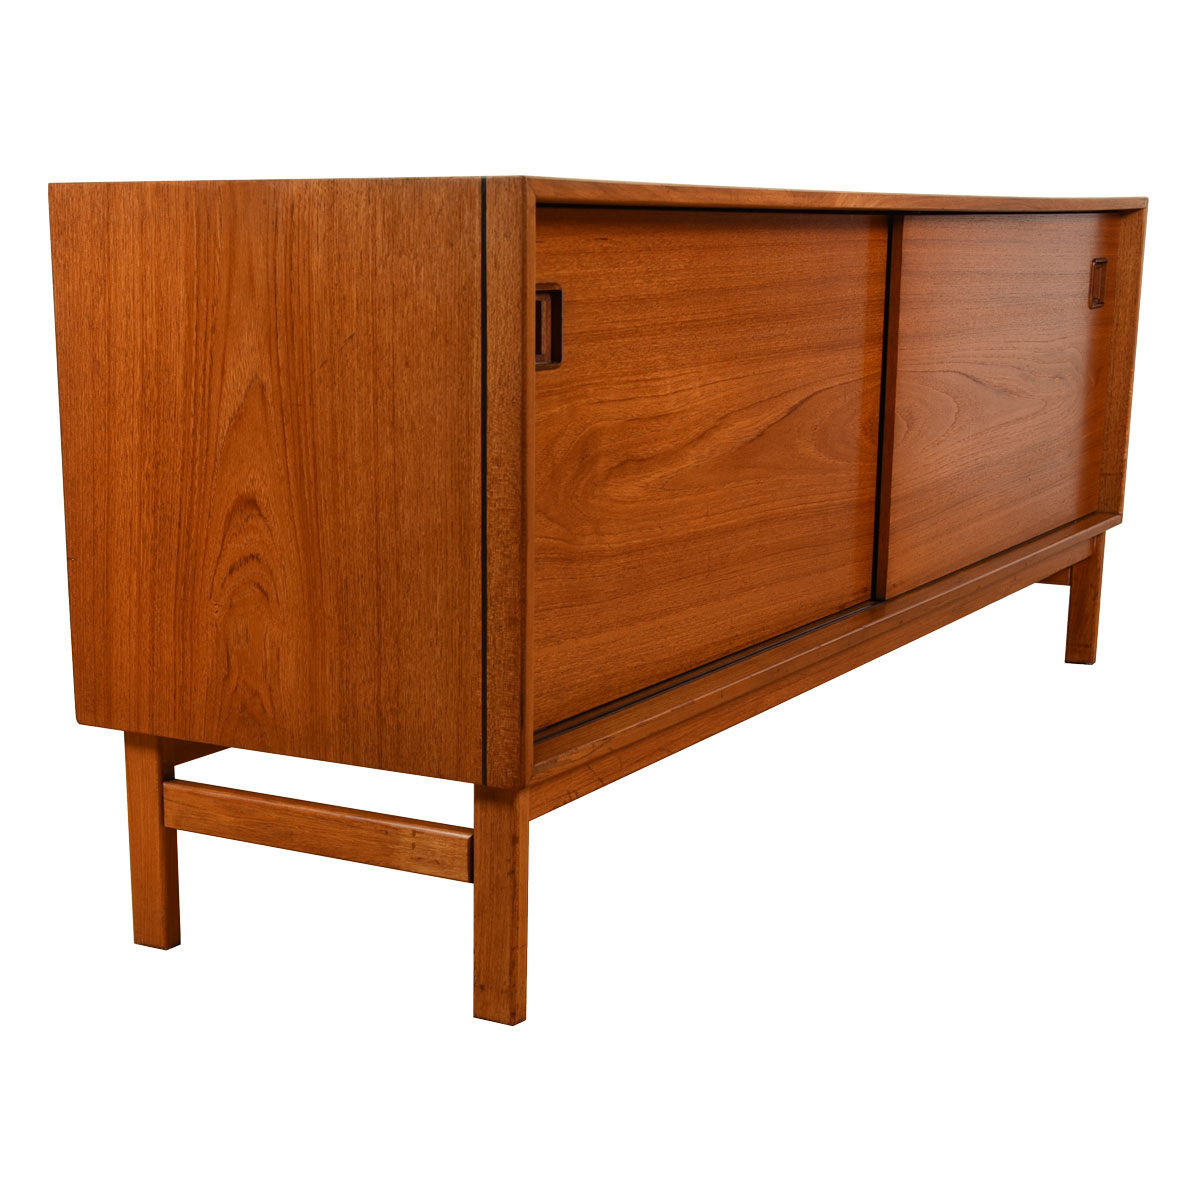 Danish Teak Low Sliding Door Cabinet / Sideboard w/ Black Edge Trim